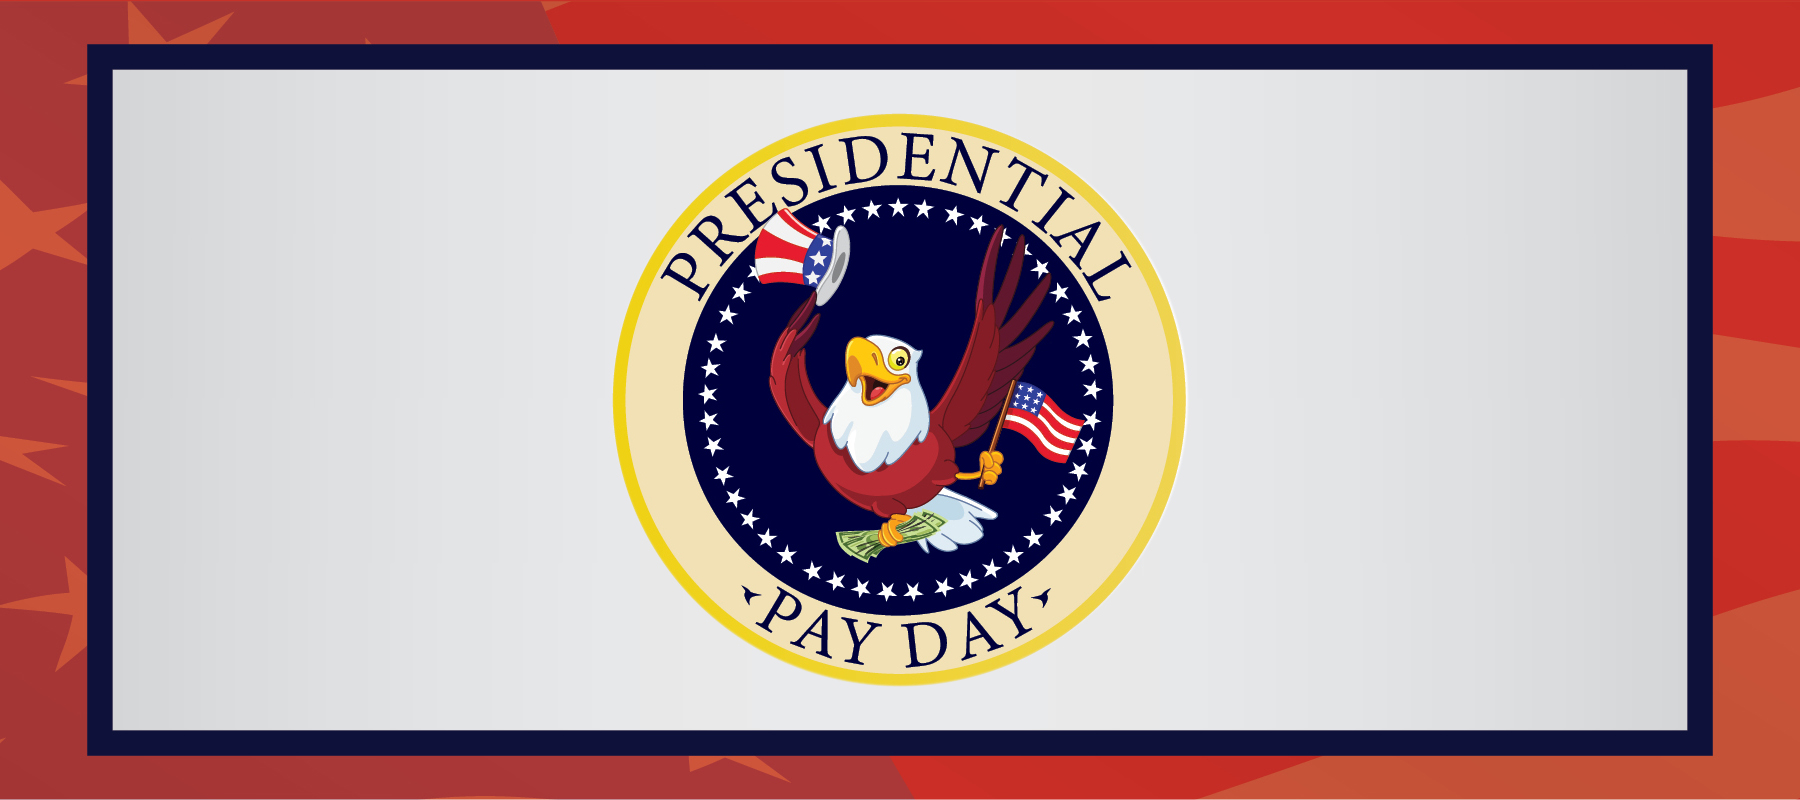 Presidential Pay Day